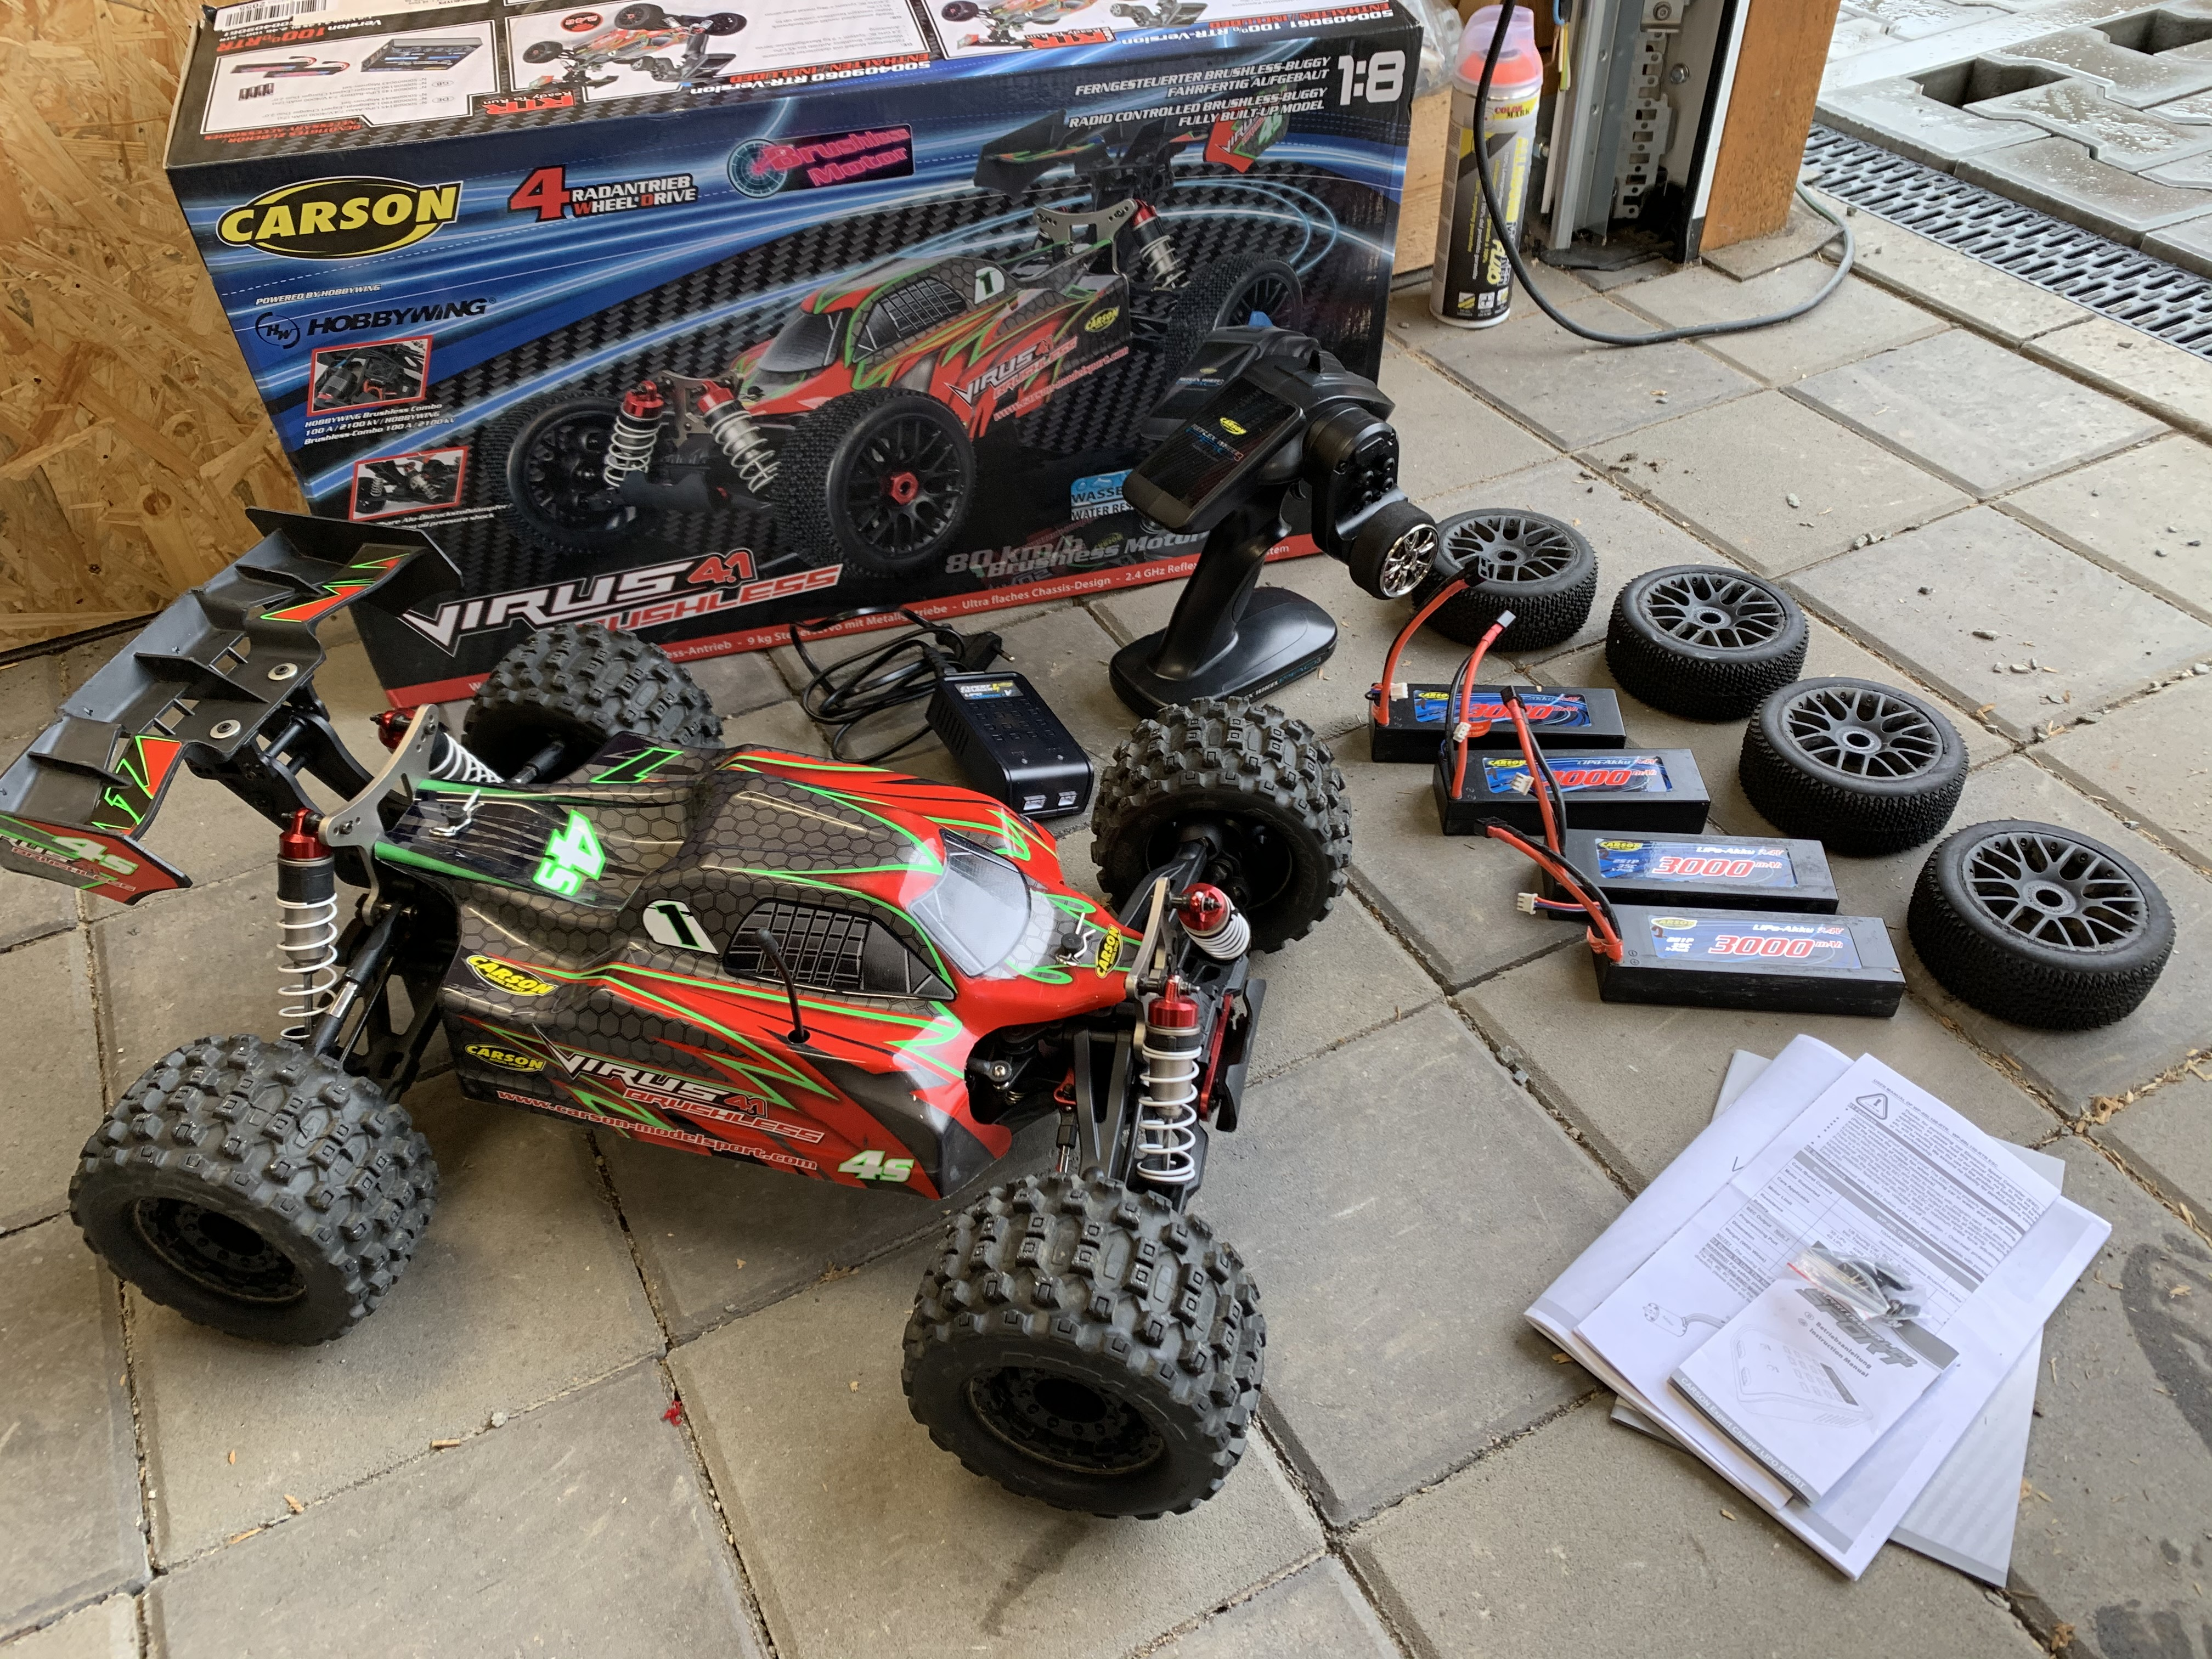 buggy 1/8 Carson 4.1 Brushless RTR + 4x lipo